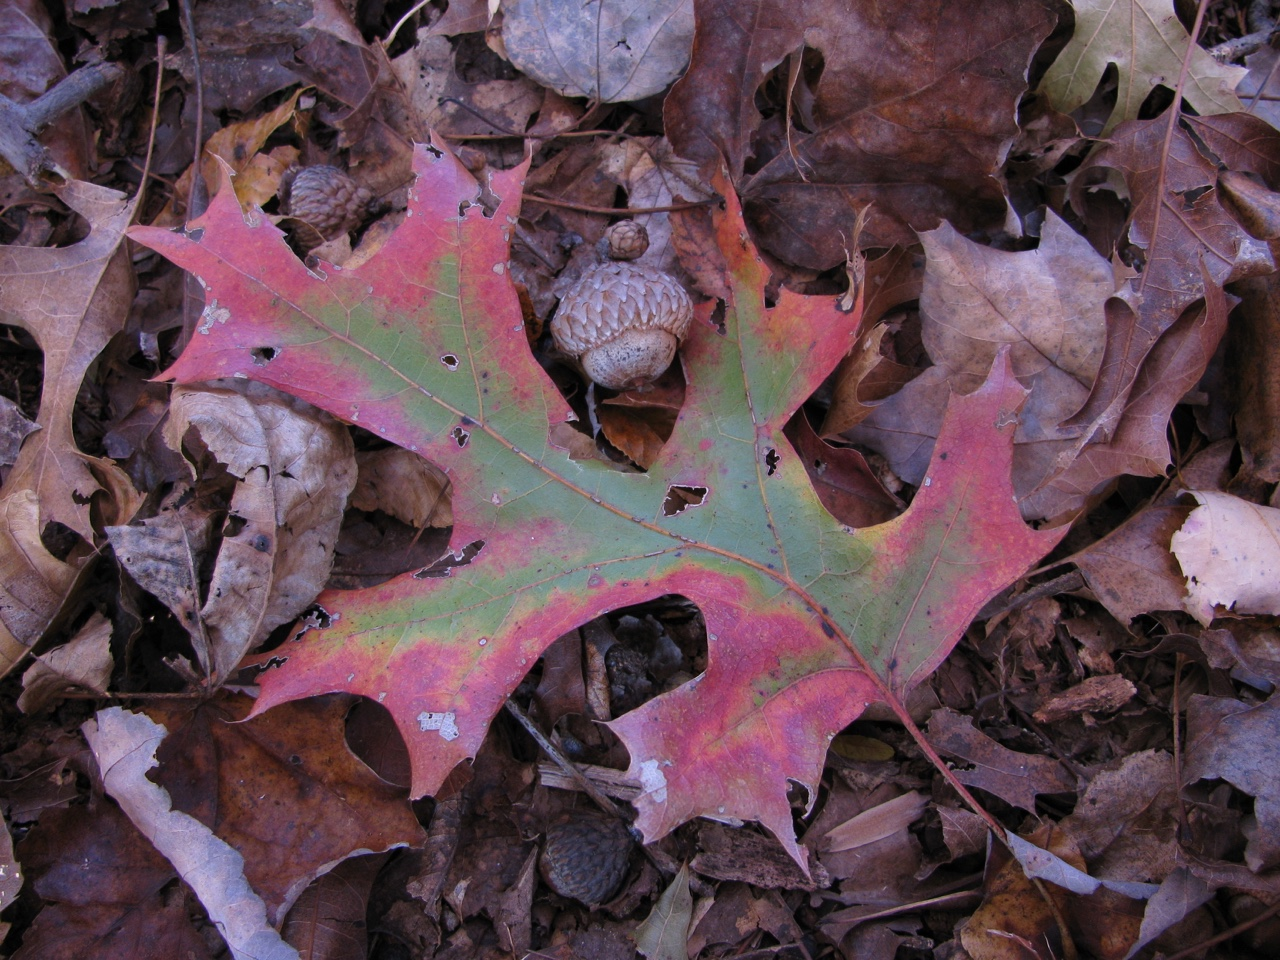 The Scientific Name is Quercus coccinea. You will likely hear them called Scarlet Oak. This picture shows the Fallen leaf and acorn. Concentric rings commonly present around the tip of the acorn. of Quercus coccinea